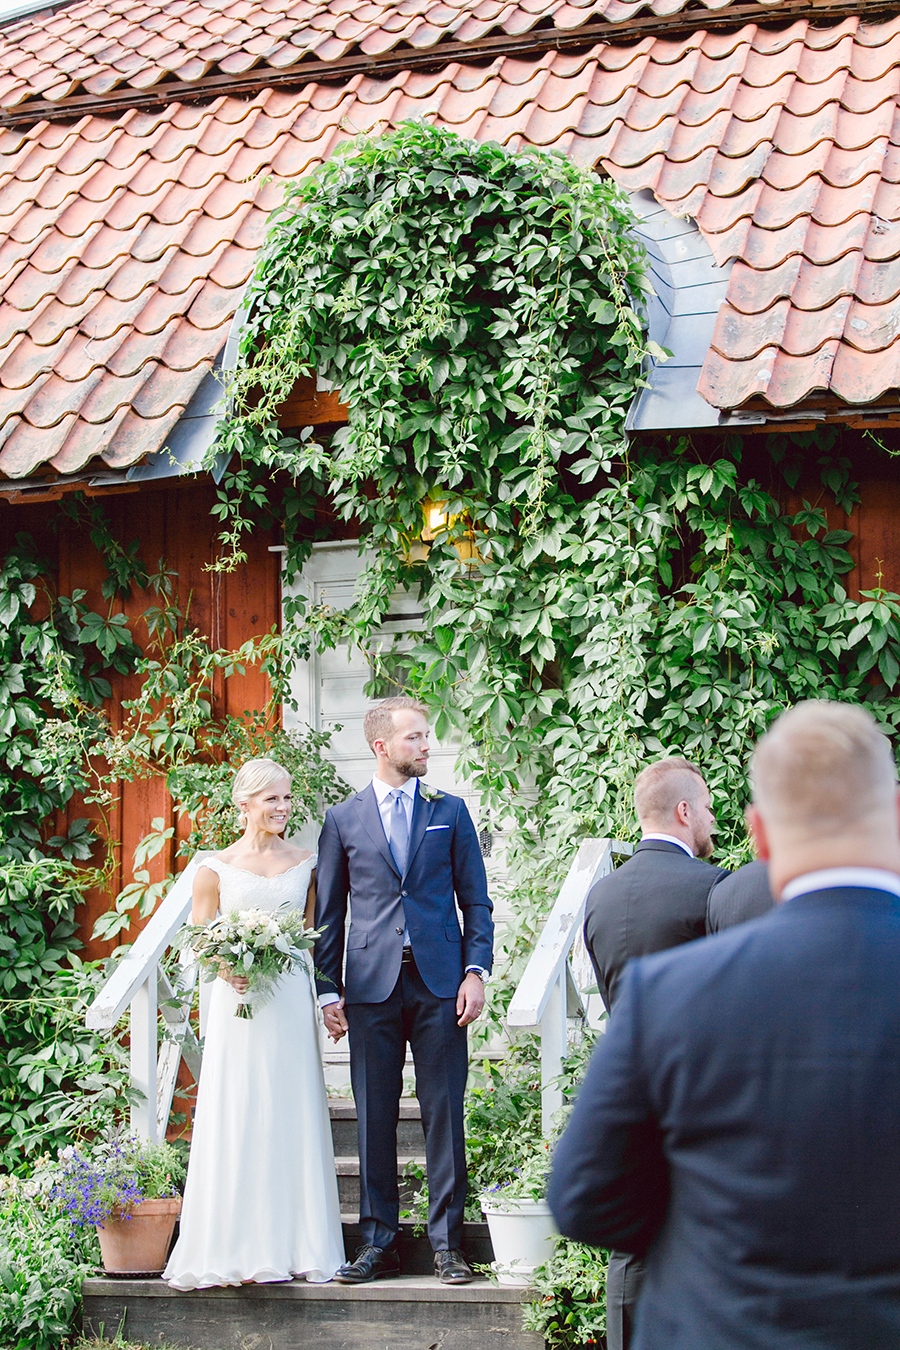 rebeccahansson.com-wedding-Elin-and-Peder-august-13th-2016-(392).jpg